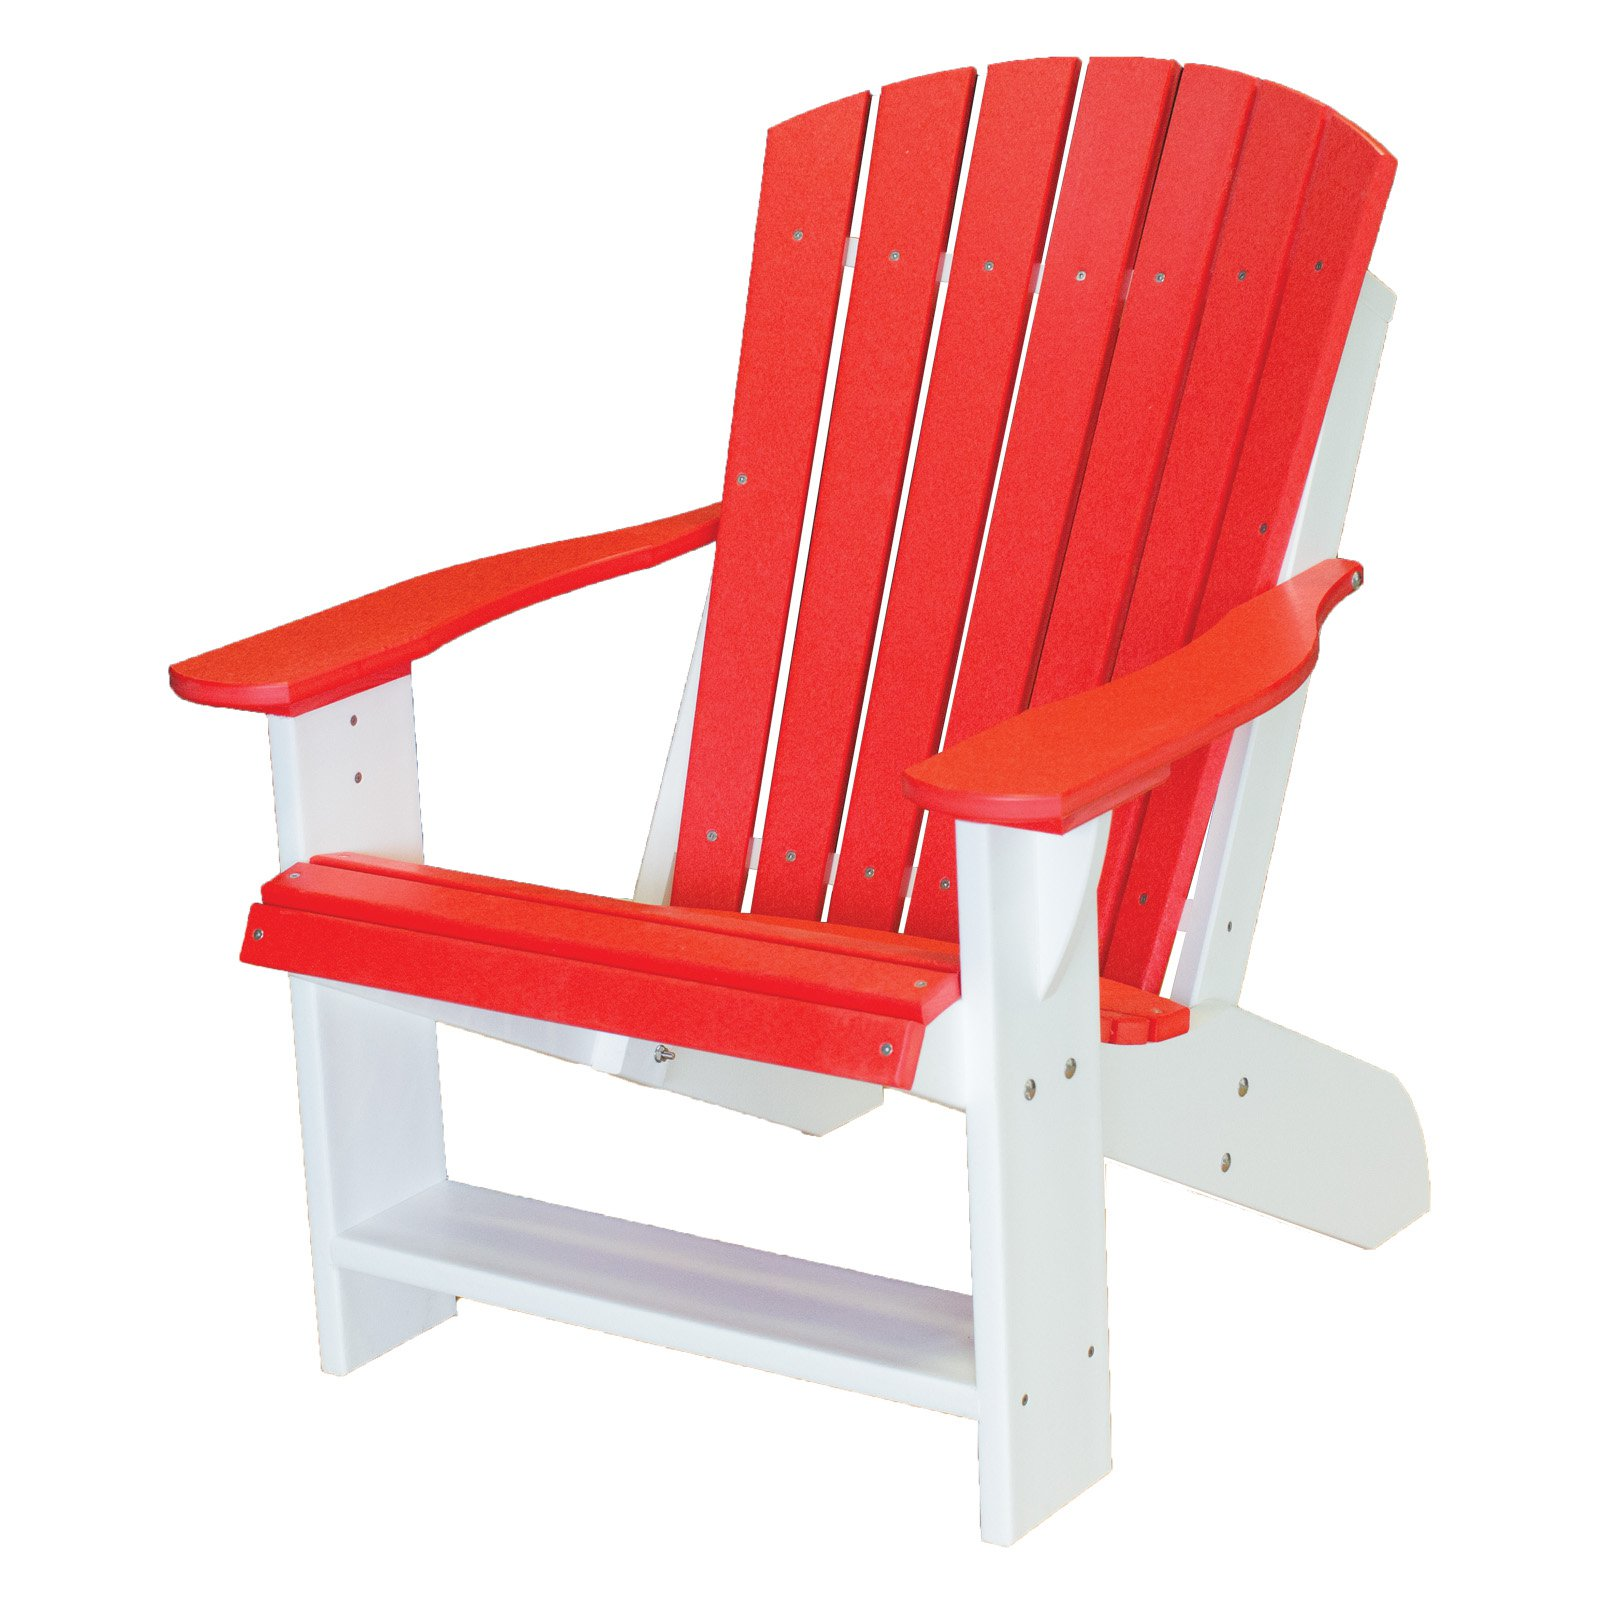 WILDRIDGE Wildridge Two-Tone Recycled Plastic Adirondack Chair